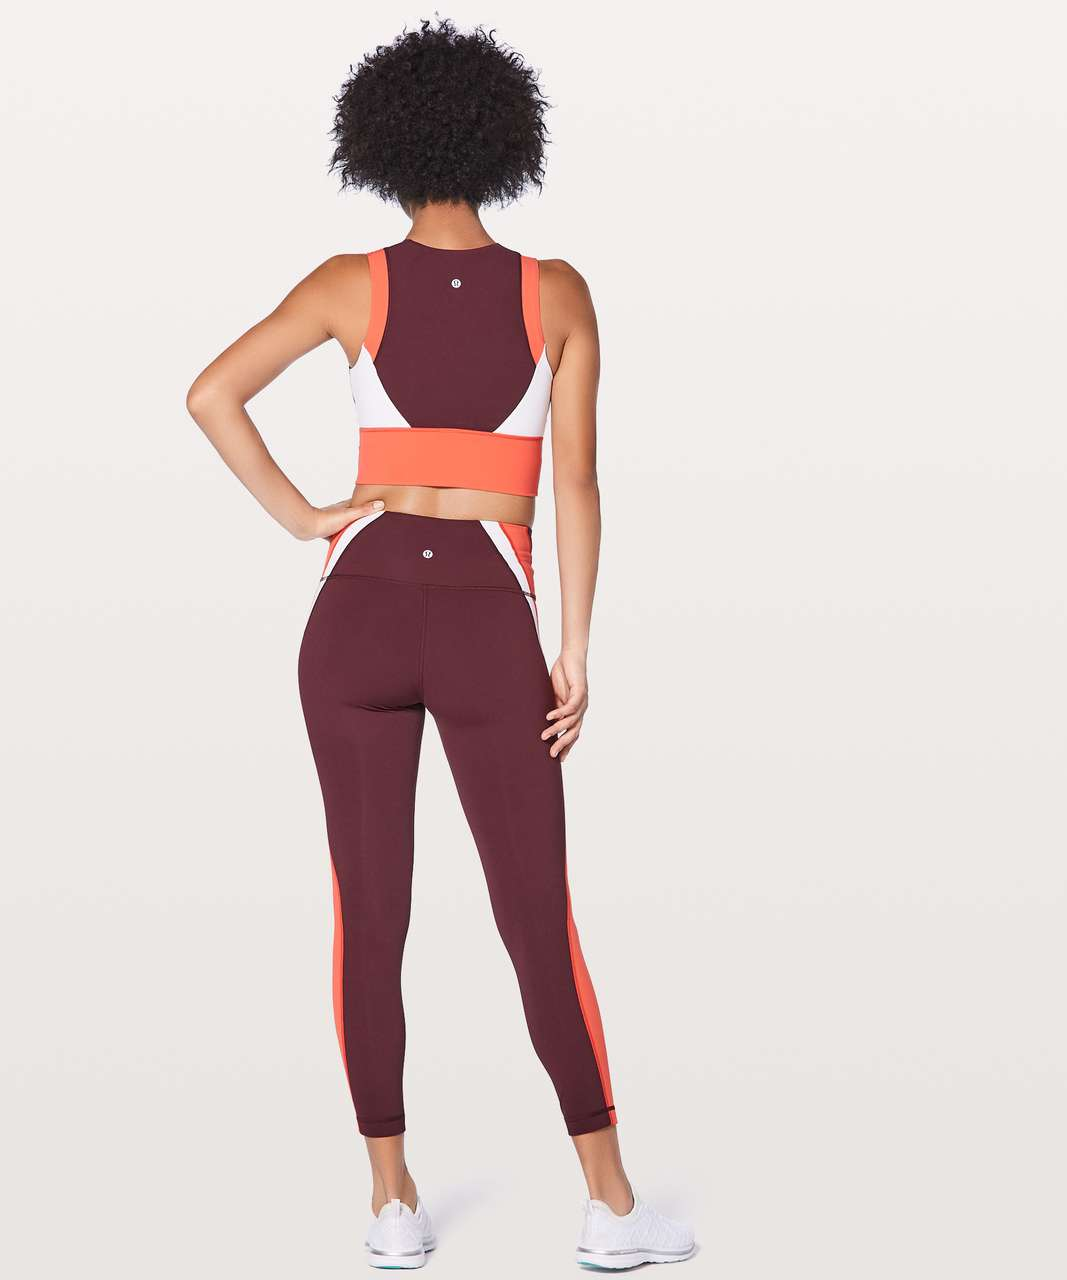 Lululemon Kick Serve Sweat Bra - Bordeaux Drama / Vivid Flame / White